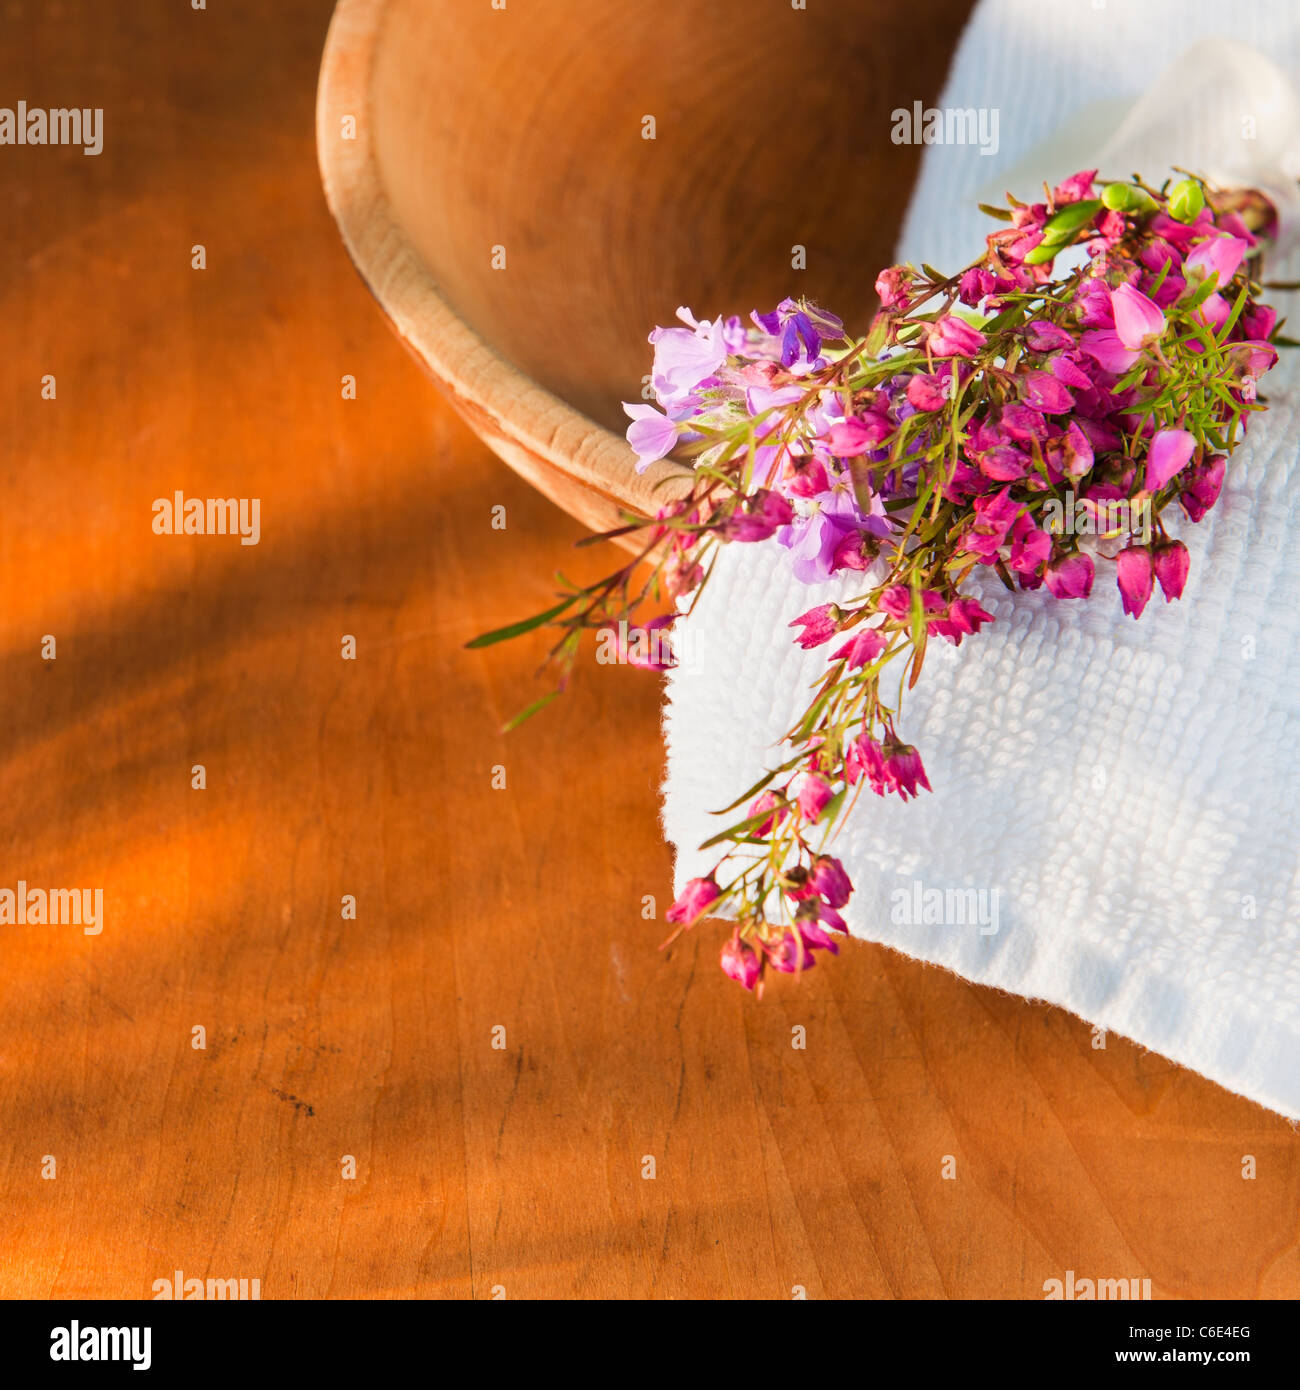 Still life with purple flowers towel and wooden bowl stock photo still life with purple flowers towel and wooden bowl izmirmasajfo